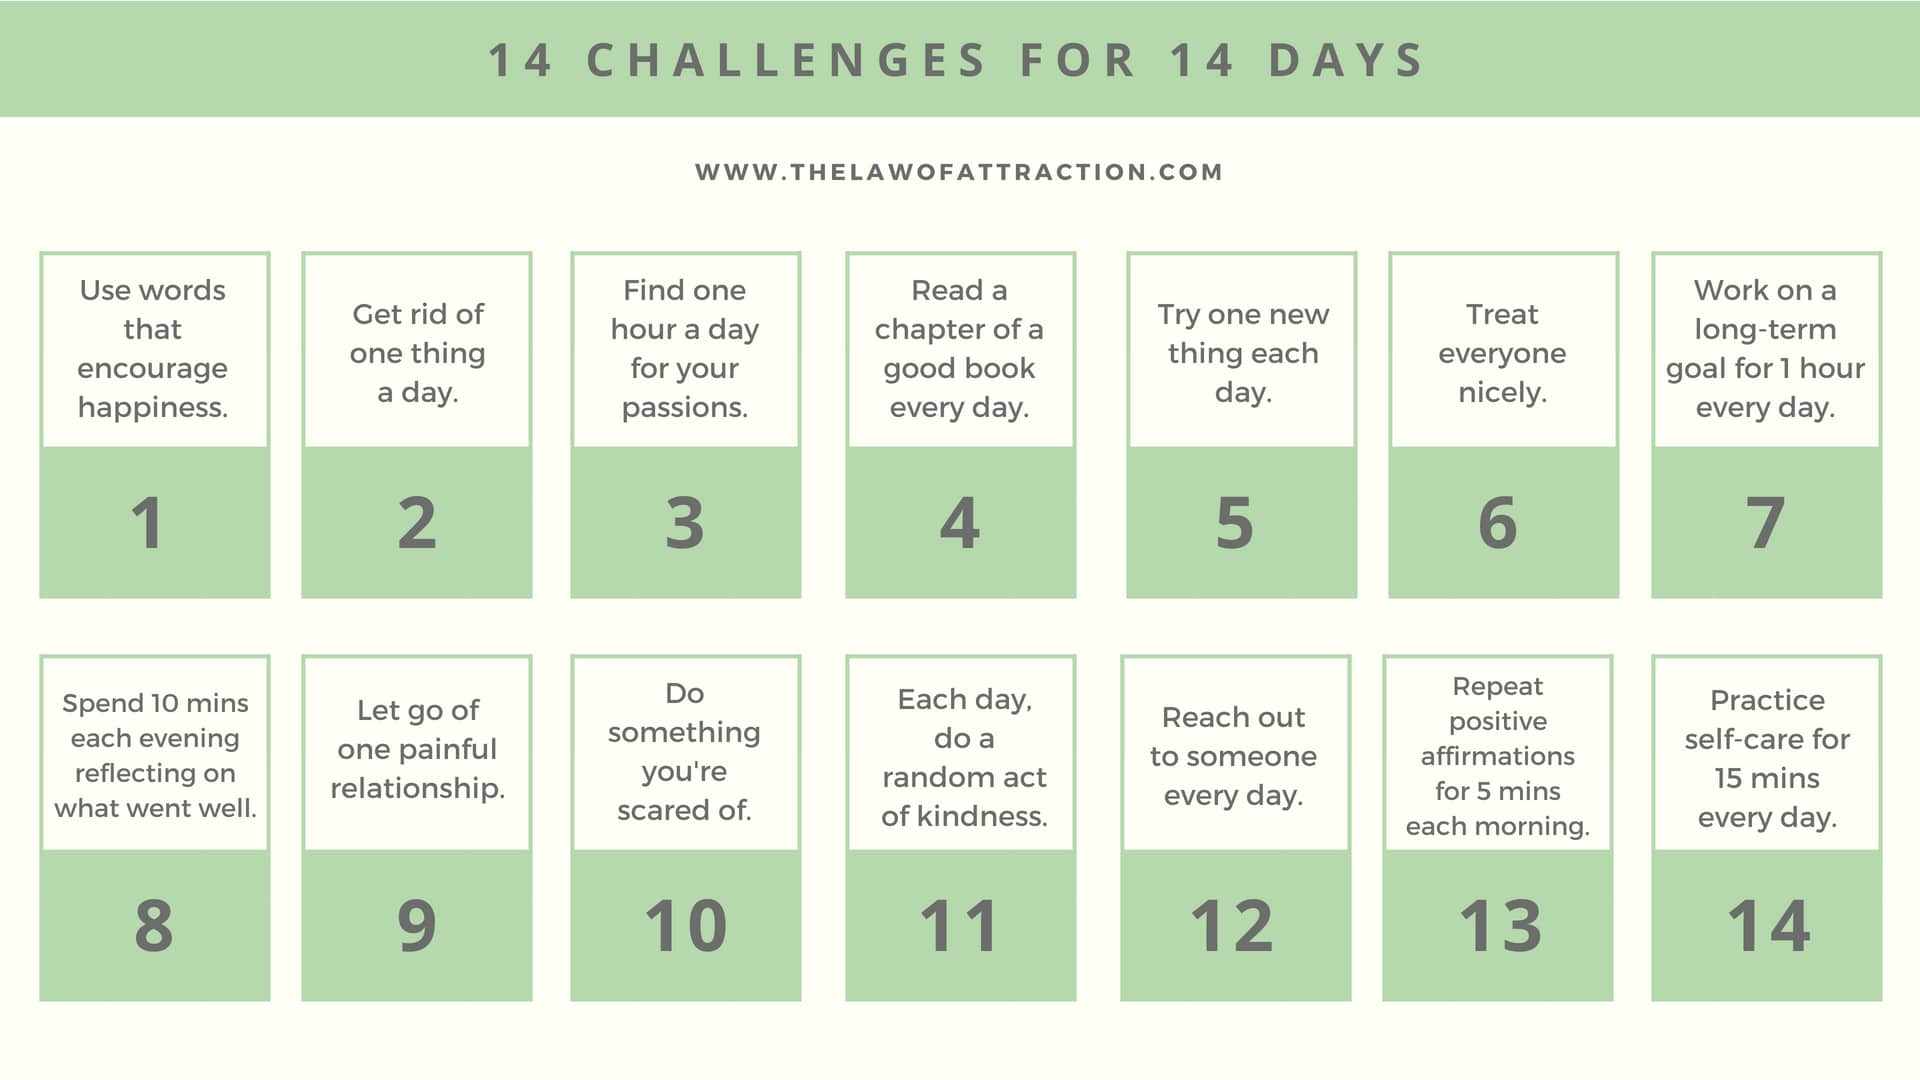 14 challenges for 14 days